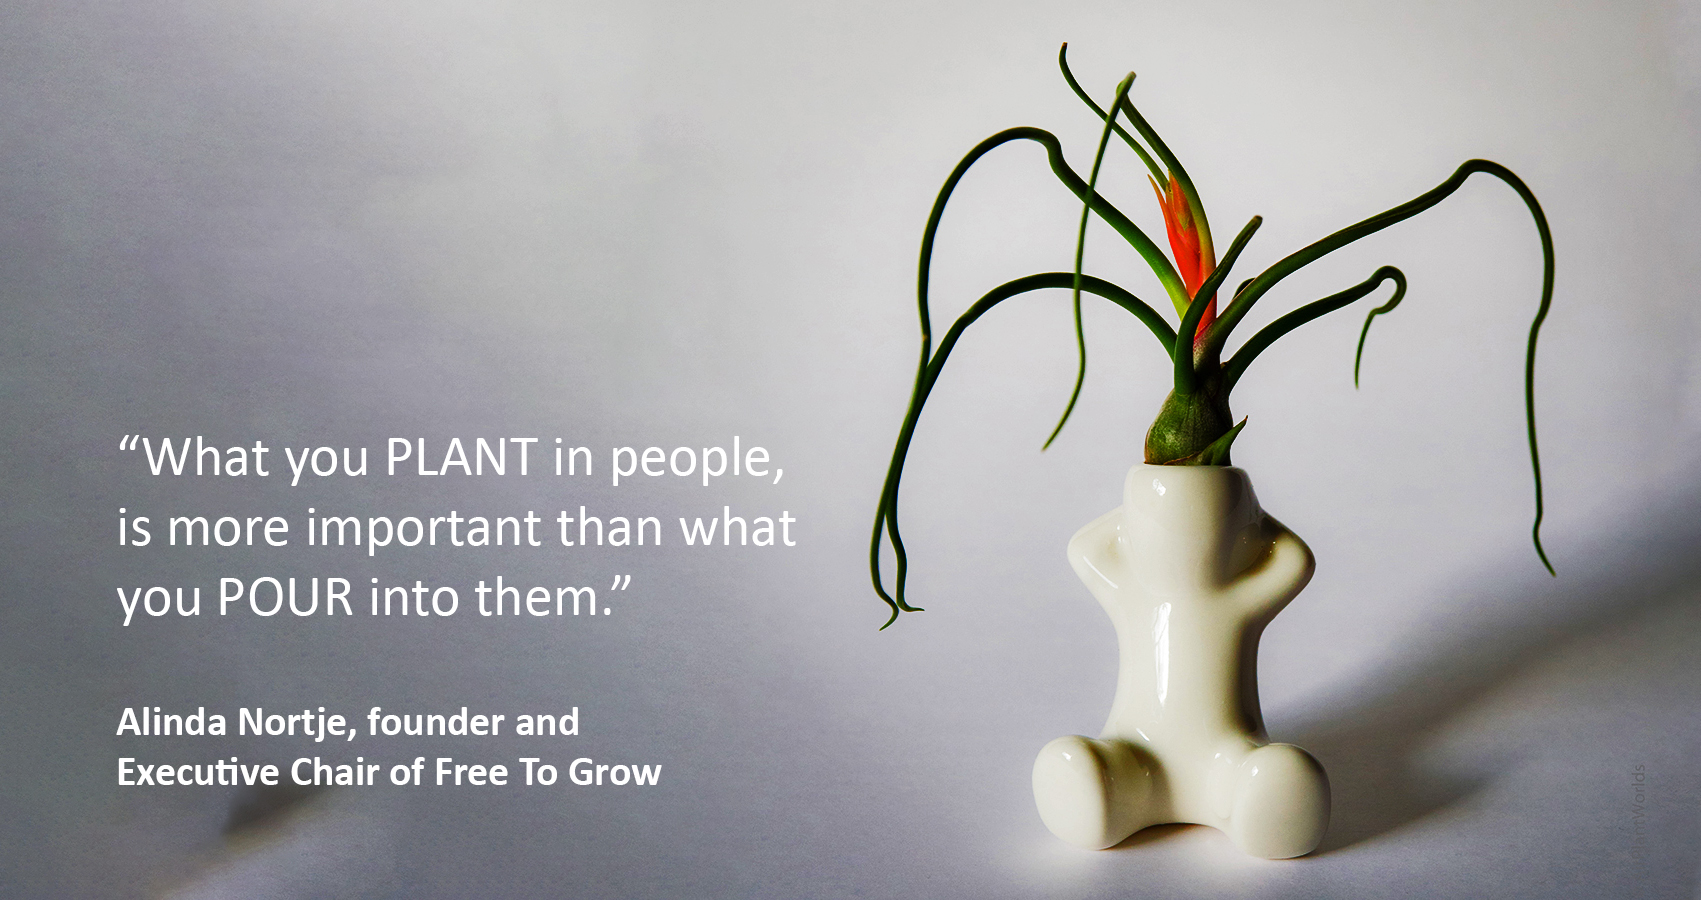 Alinda Nortje, Free To Grow's learning methdology